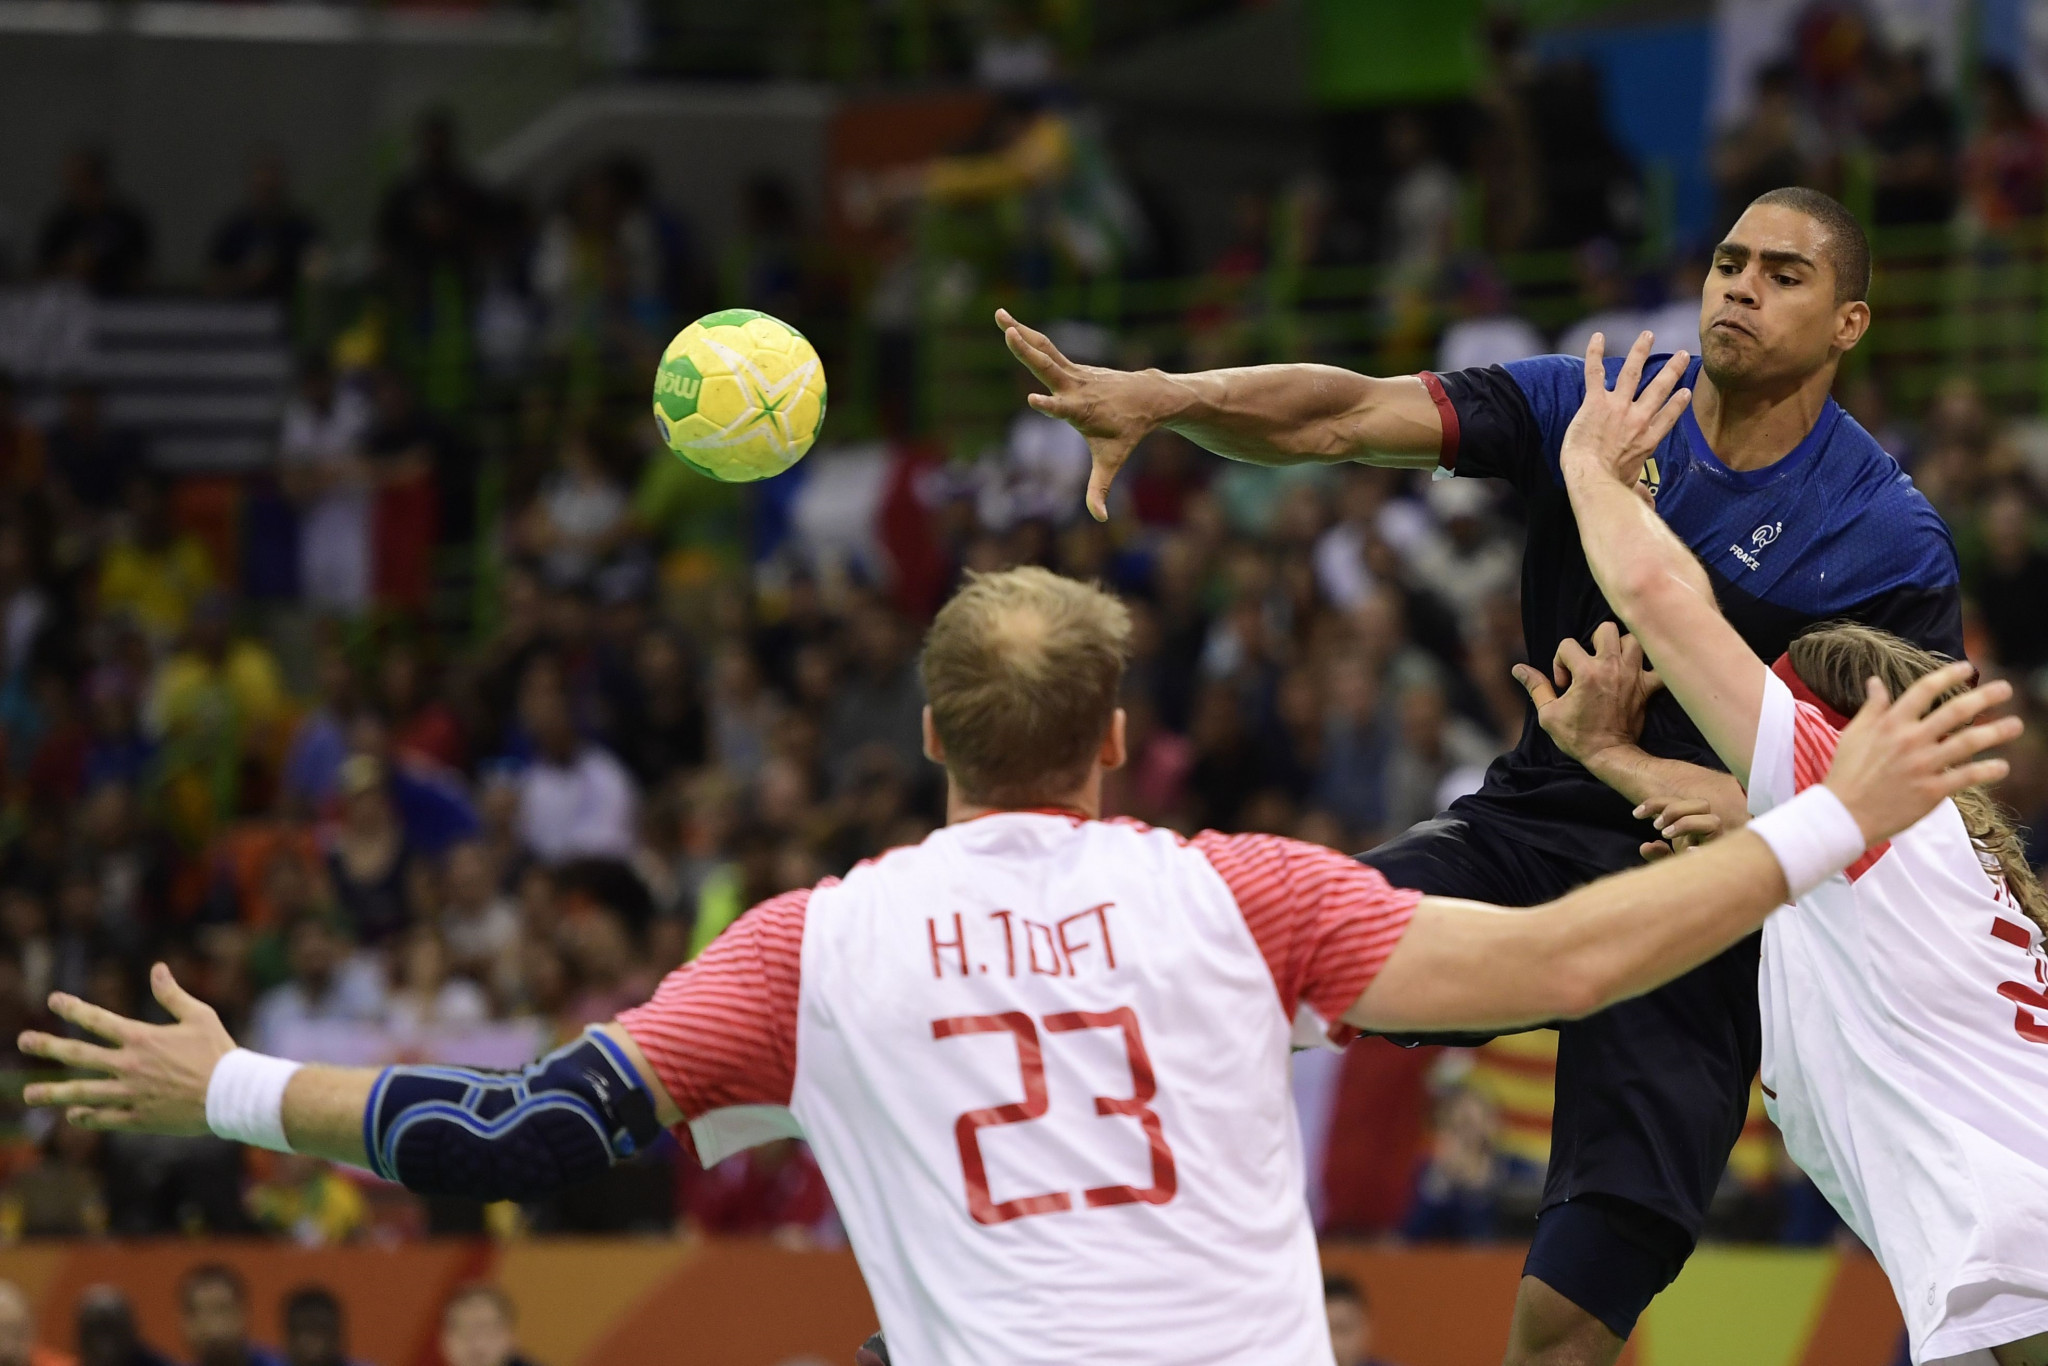 Reports on changes to the rules and regulations of handball will be given at the IHF Congress ©Getty Images